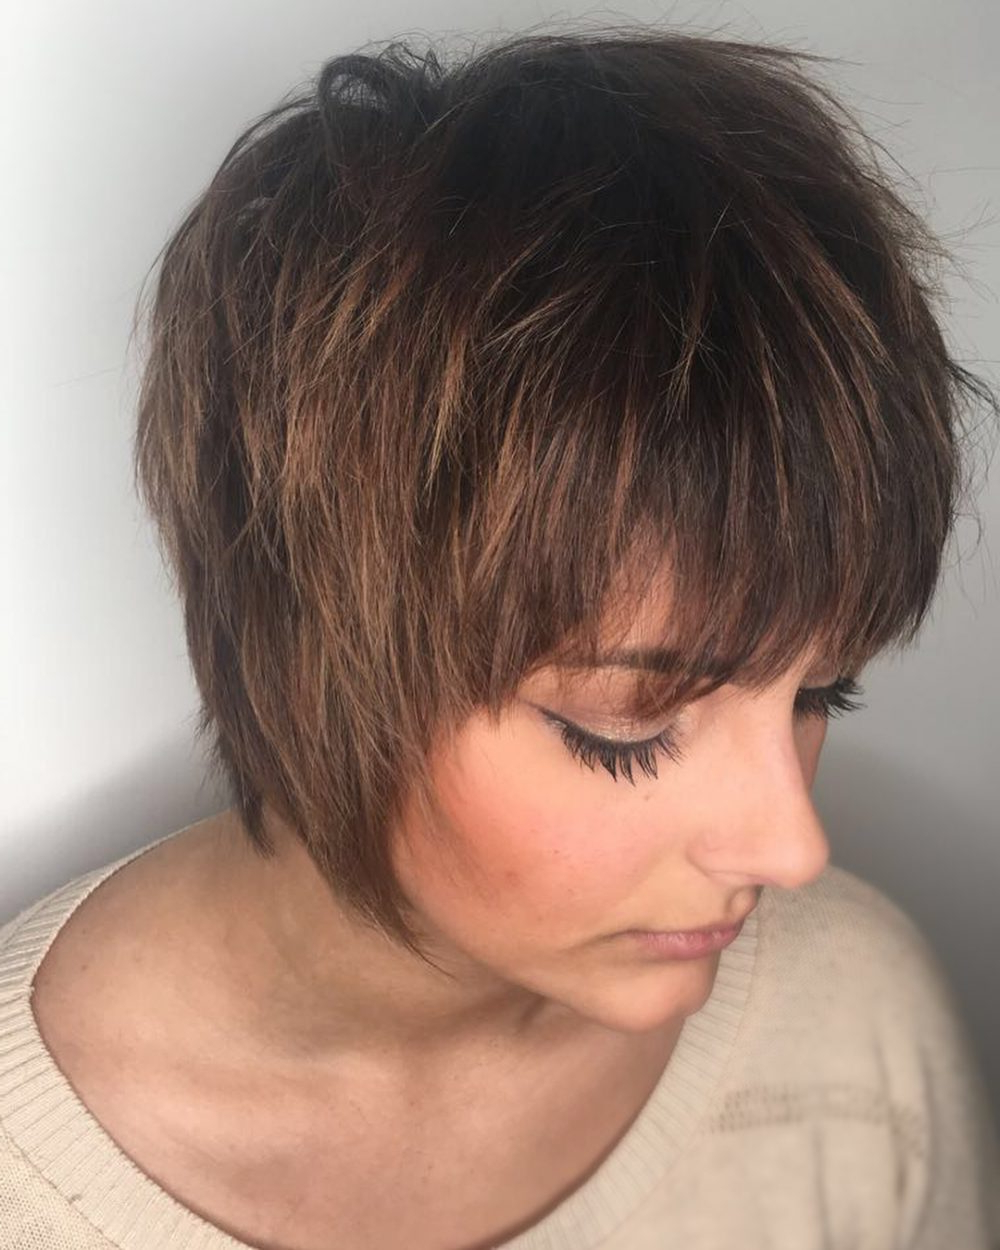 Top 25 Short Shag Haircuts Of 2019 In Jaw Length Shaggy Bob Hairstyles (View 9 of 20)